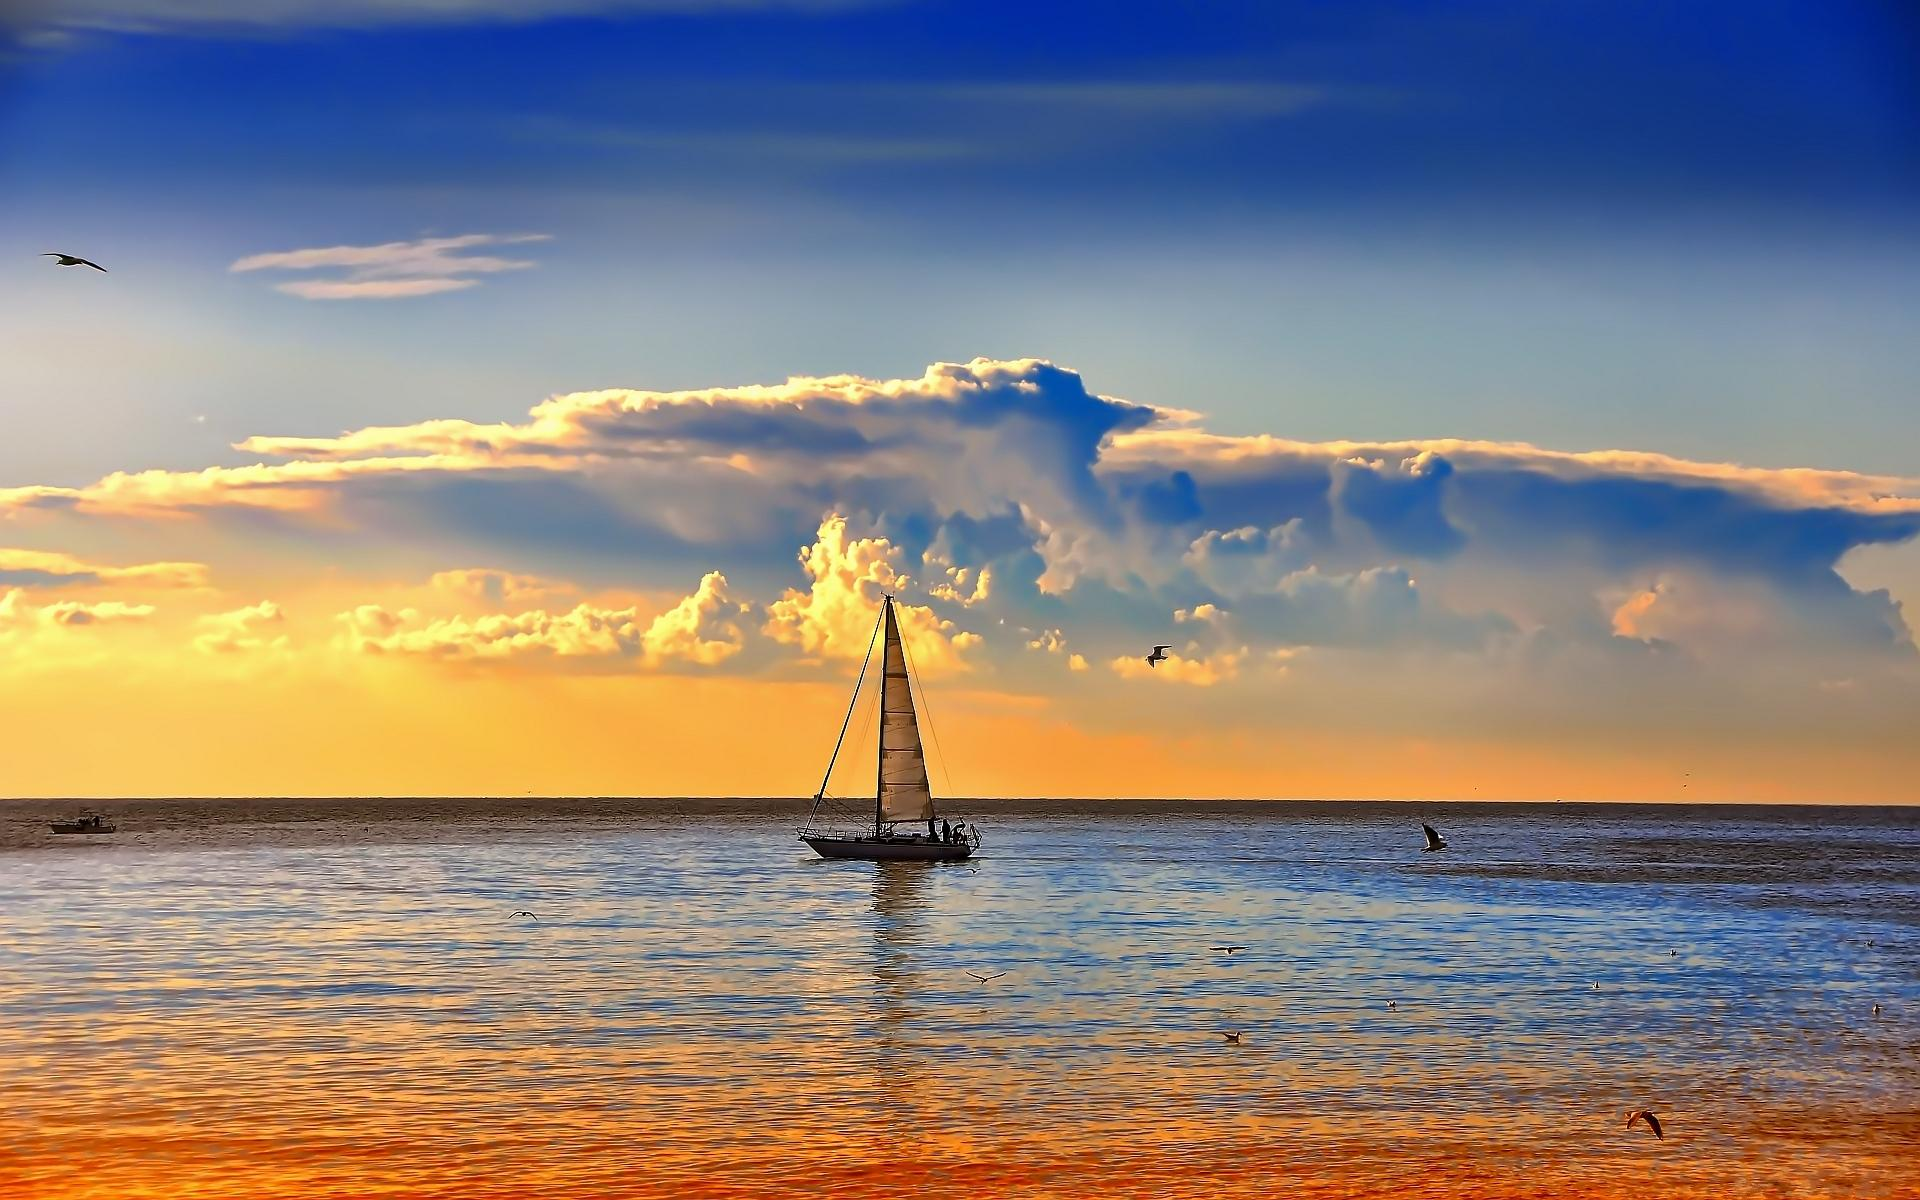 6824390-sailboat-wallpaper.jpg